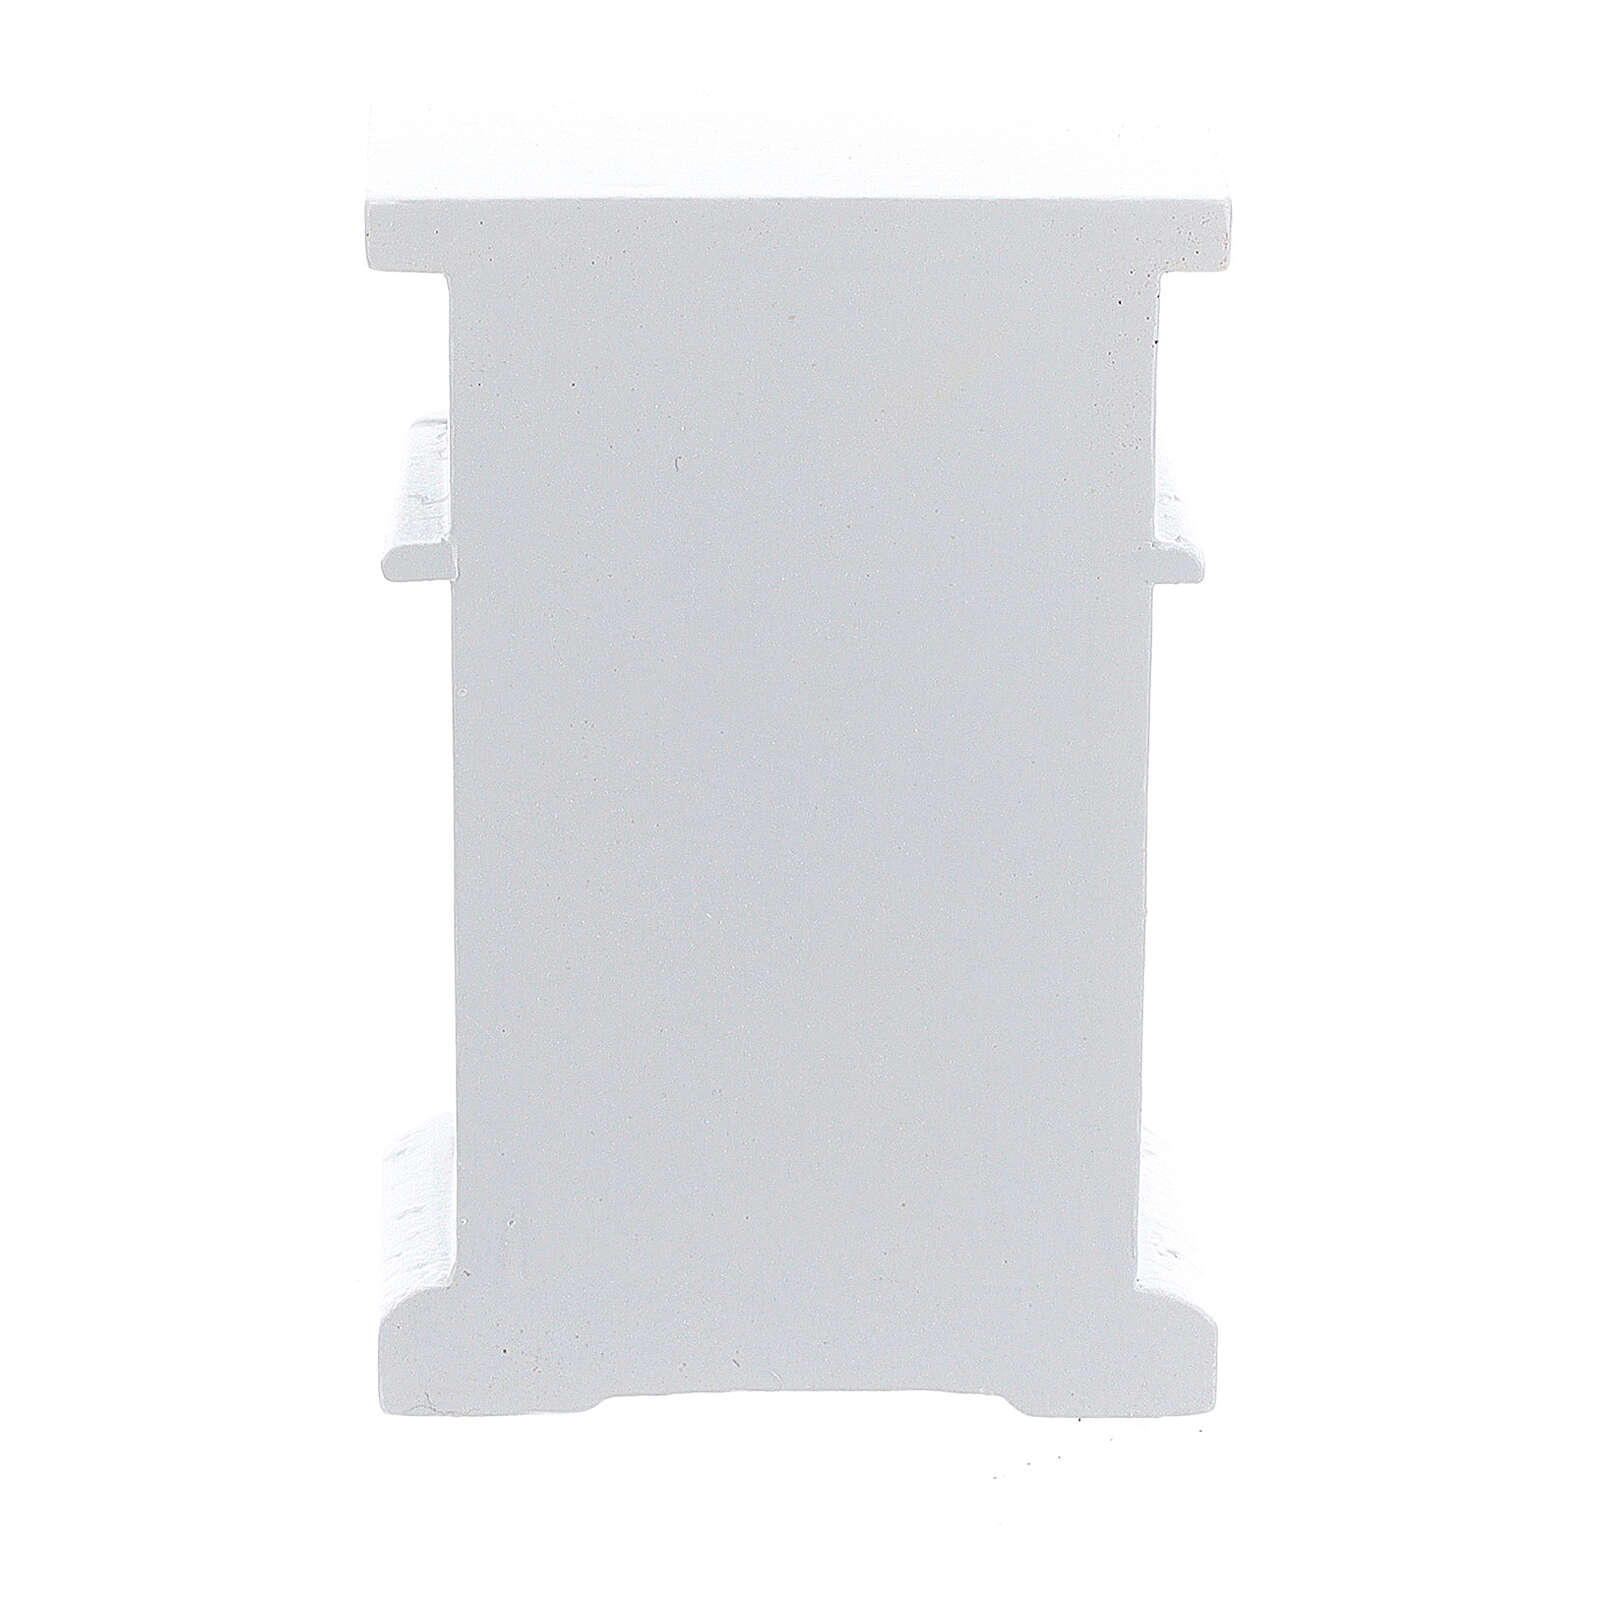 White wood nightstand 6x4x3 cm for Nativity Scene with 12-14 cm figurines 4